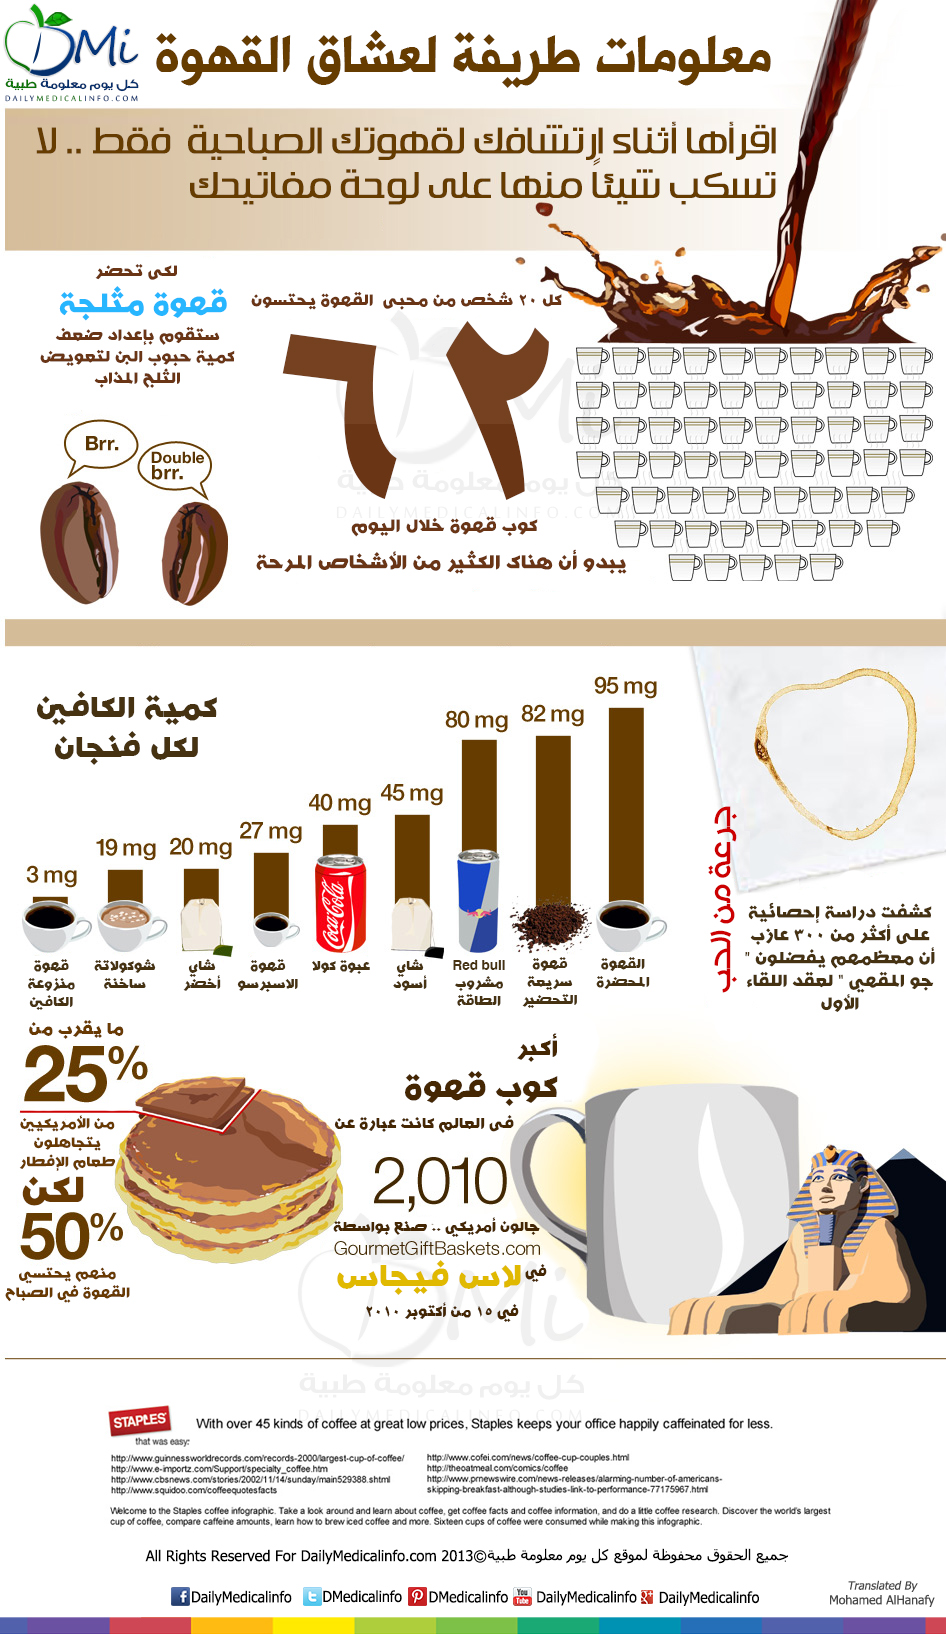 DailyMedicalinfo coffee fun facts infographic